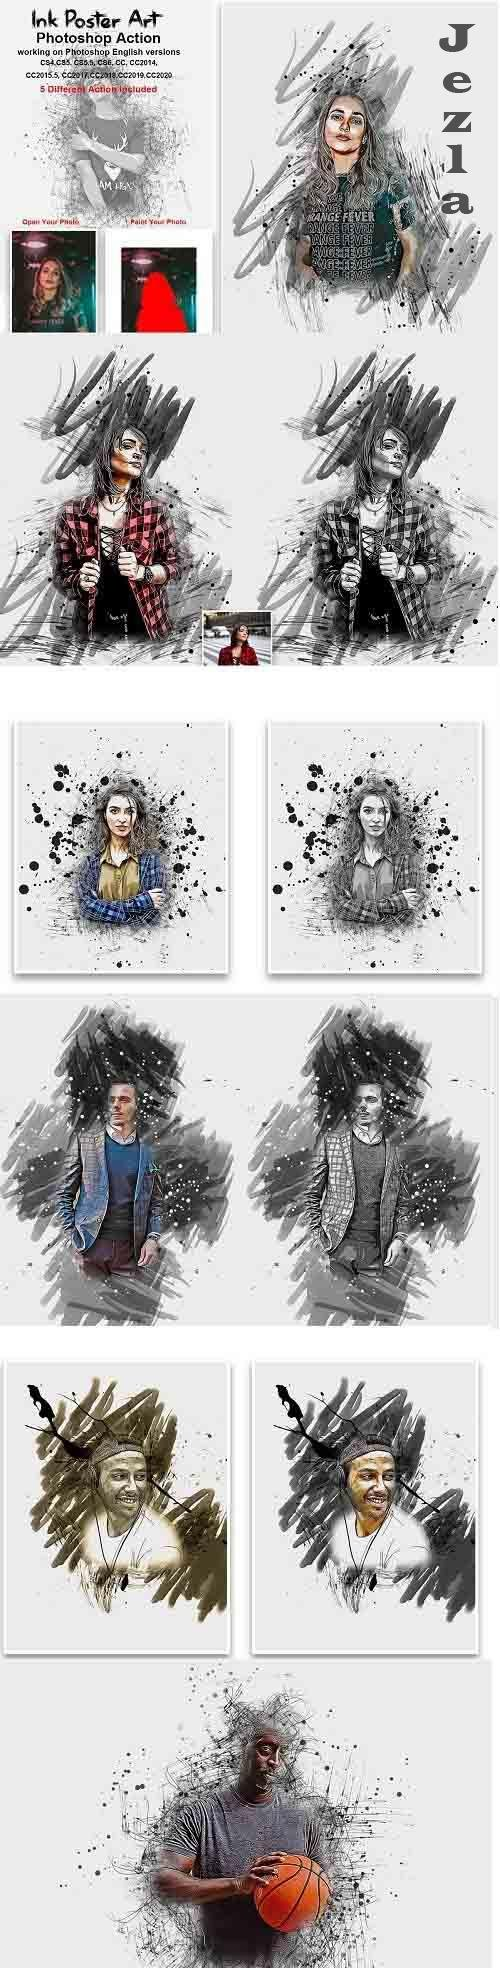 CreativeMarket - Ink Poster Art Photoshop Action 5435418